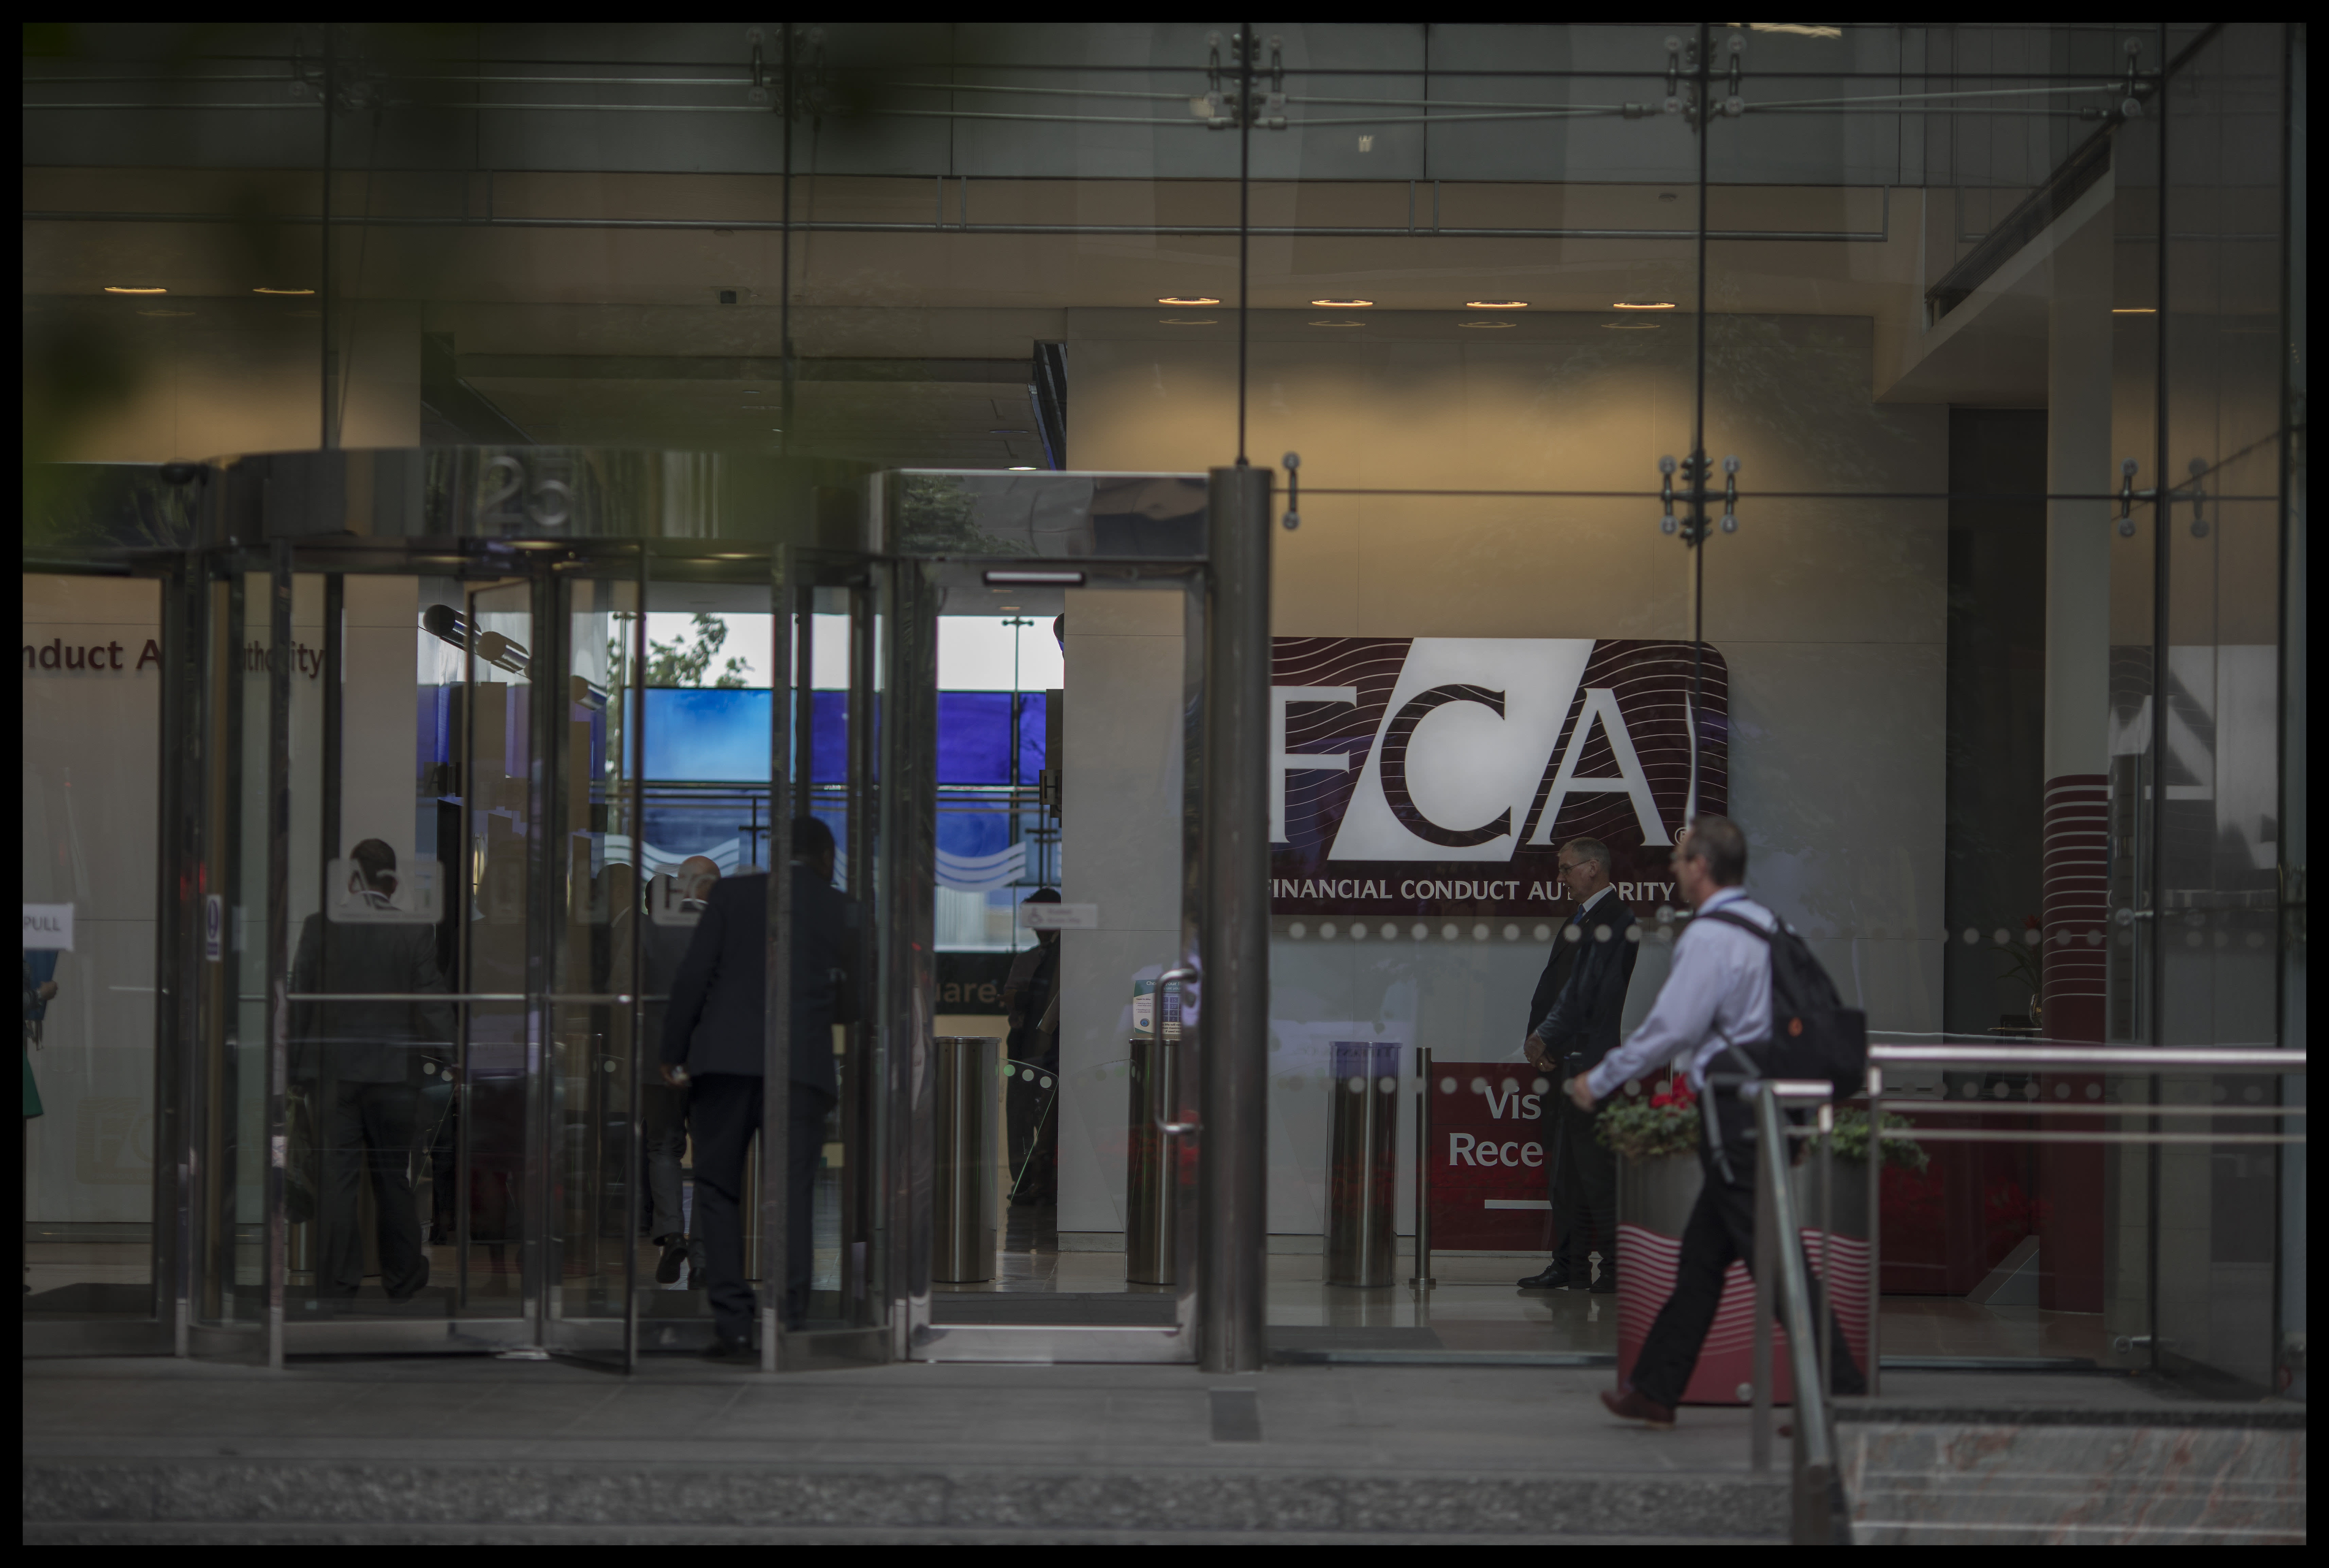 LCF victims to join protest outside FCA headquarters